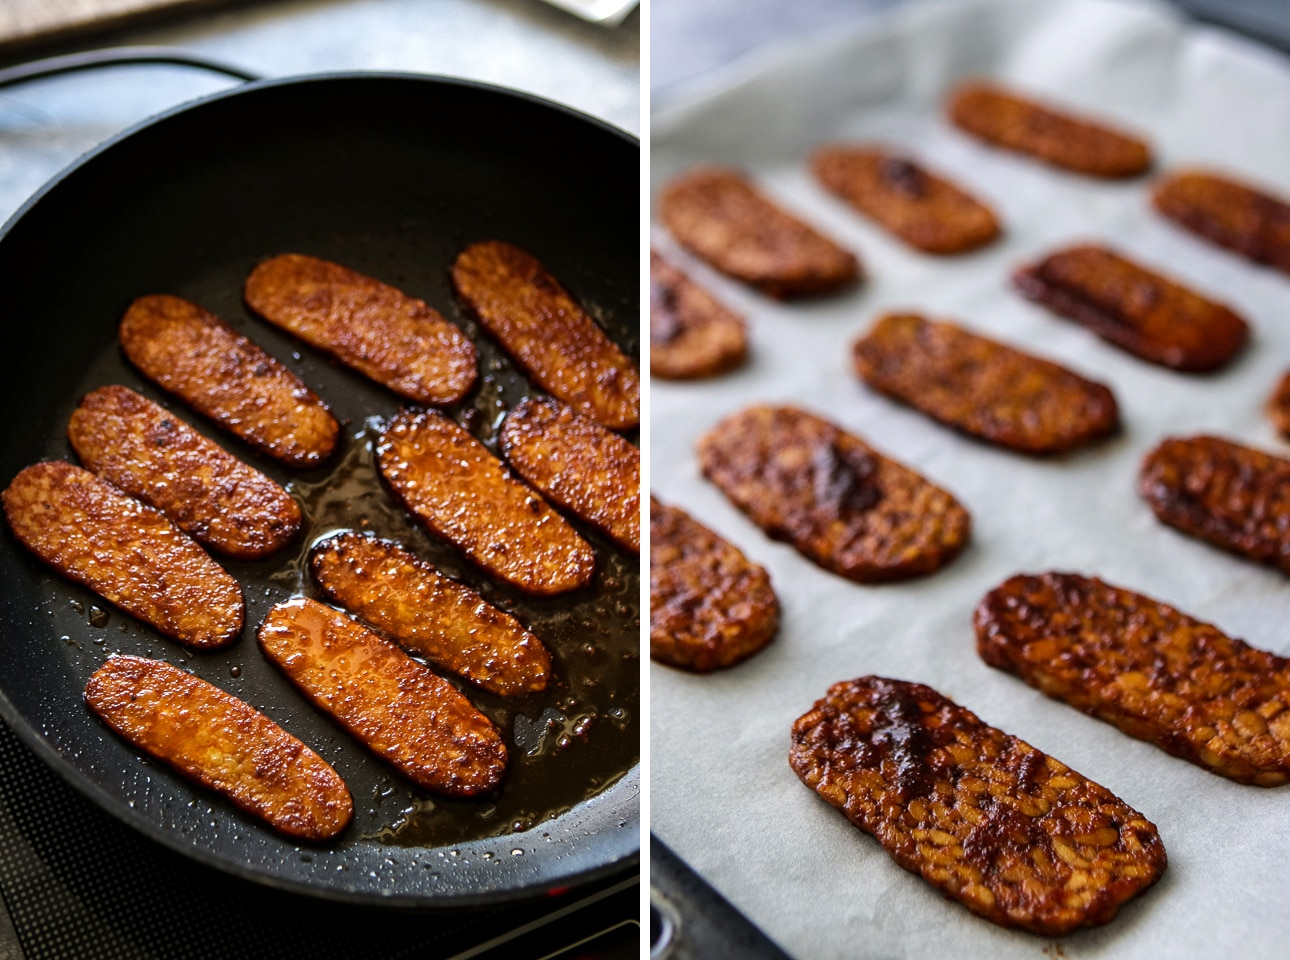 Marinated Tempeh in a Frying Pan and on a Baking Tray